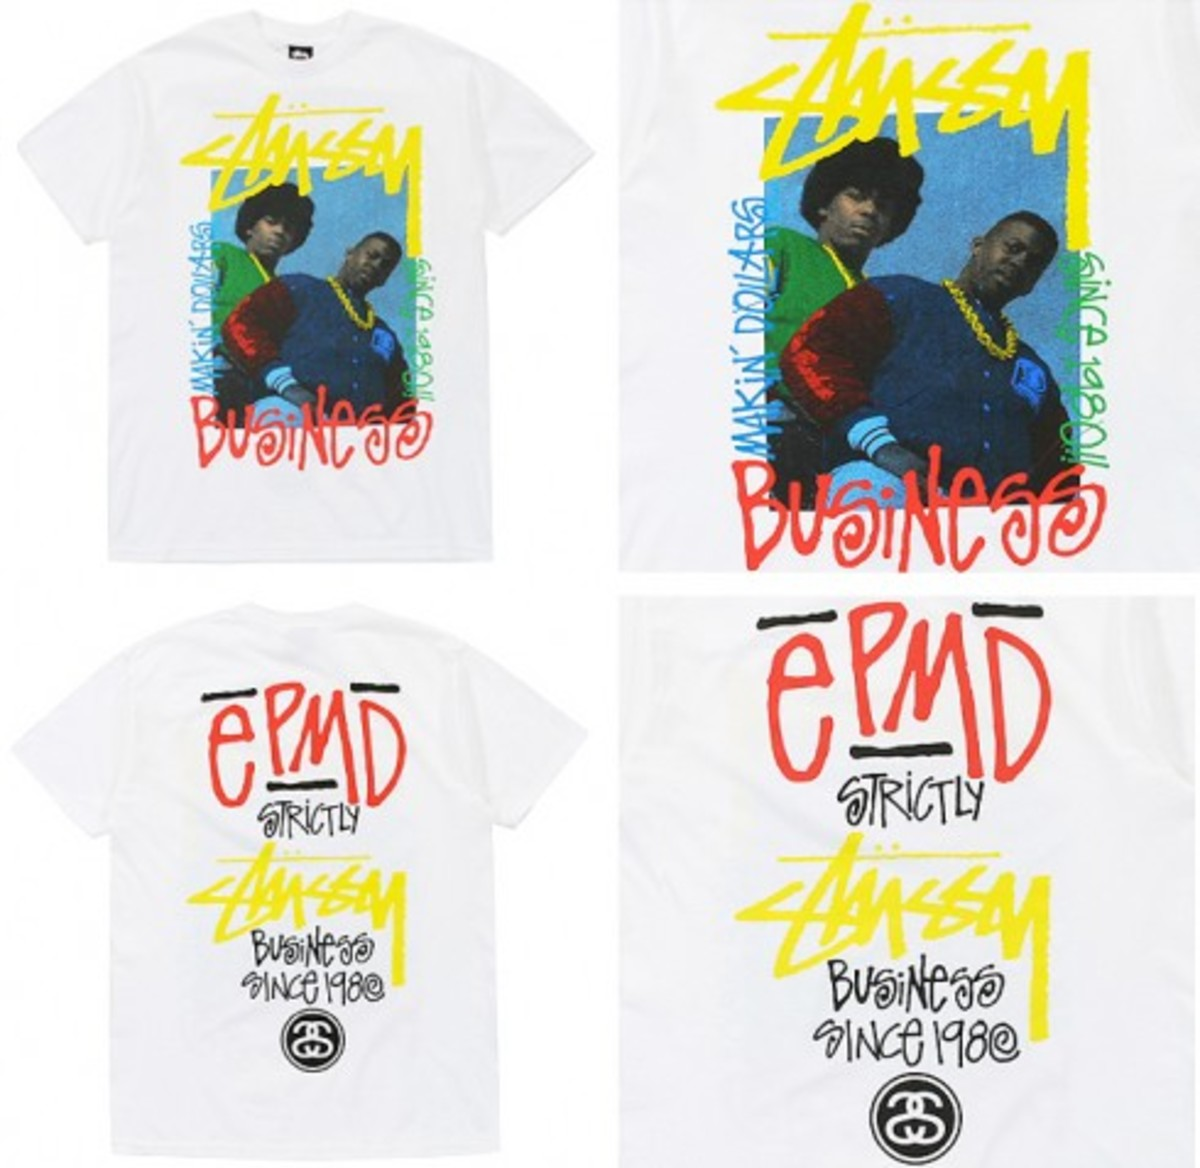 Stussy x EMPD - Strictly Business T-Shirt